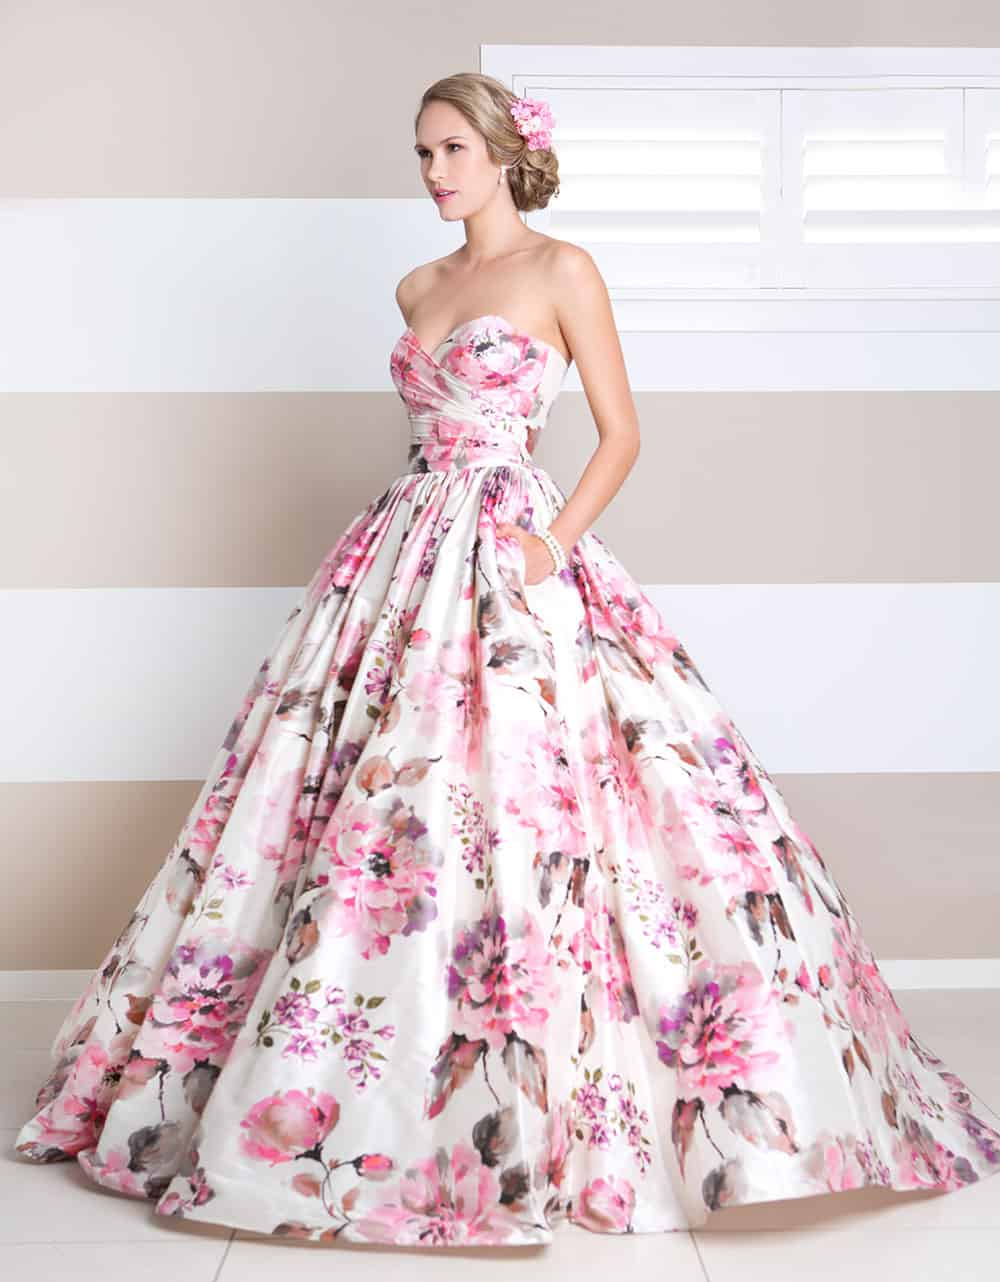 Floral pink-hued wedding gown from Wendy Makin.